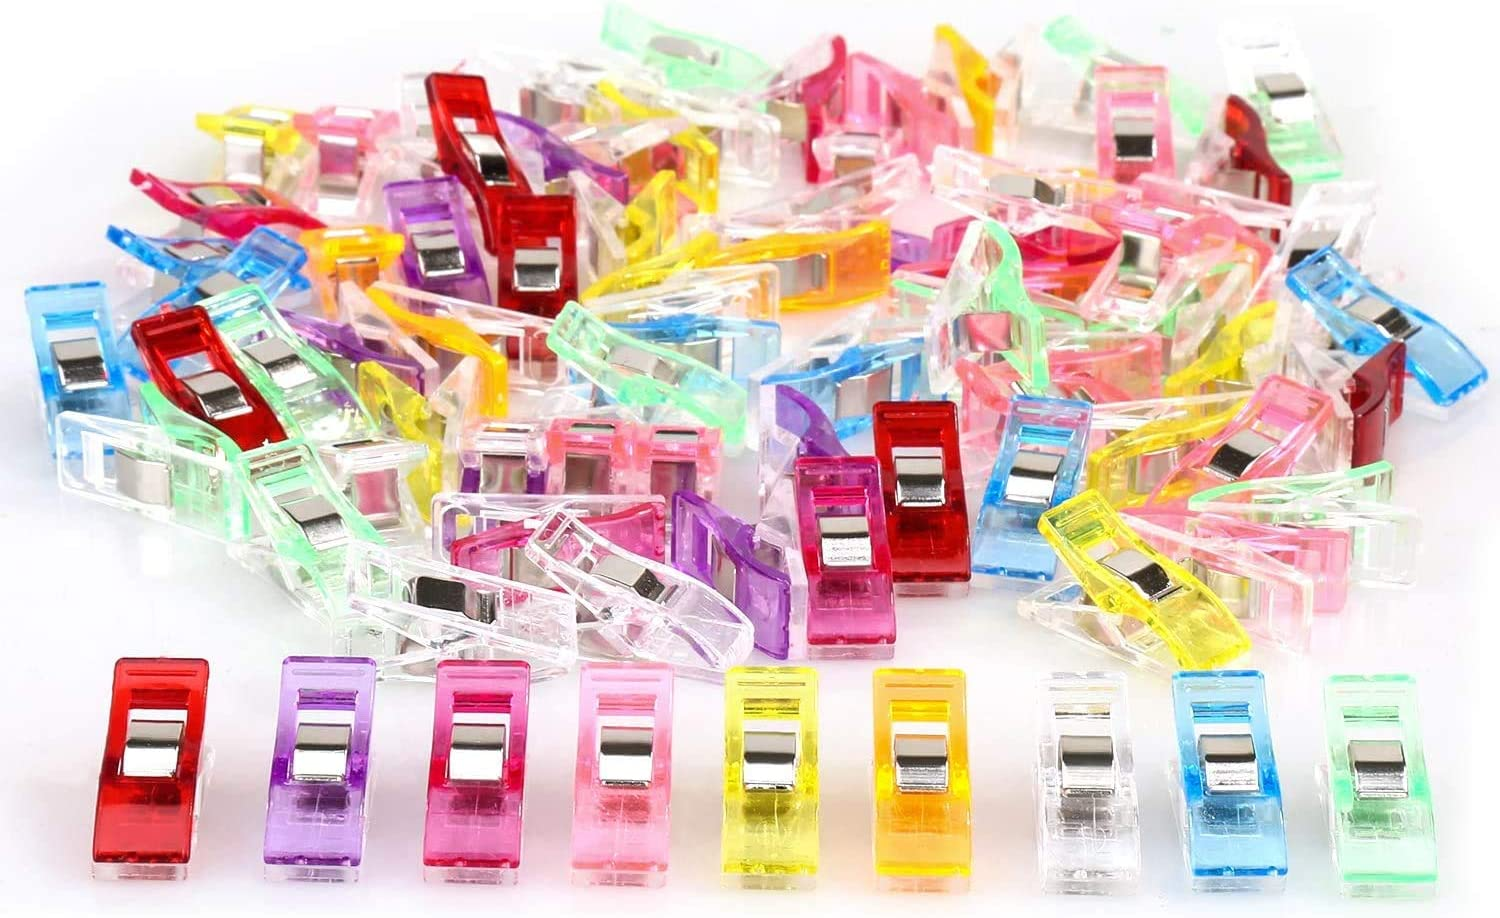 Multipurpose Sewing Quilting Clips Perfect Multipurpose for Sewing Binding,Crafts,Fabric,Paper Work and Hanging Little Things Sewing Clips(100pcs)